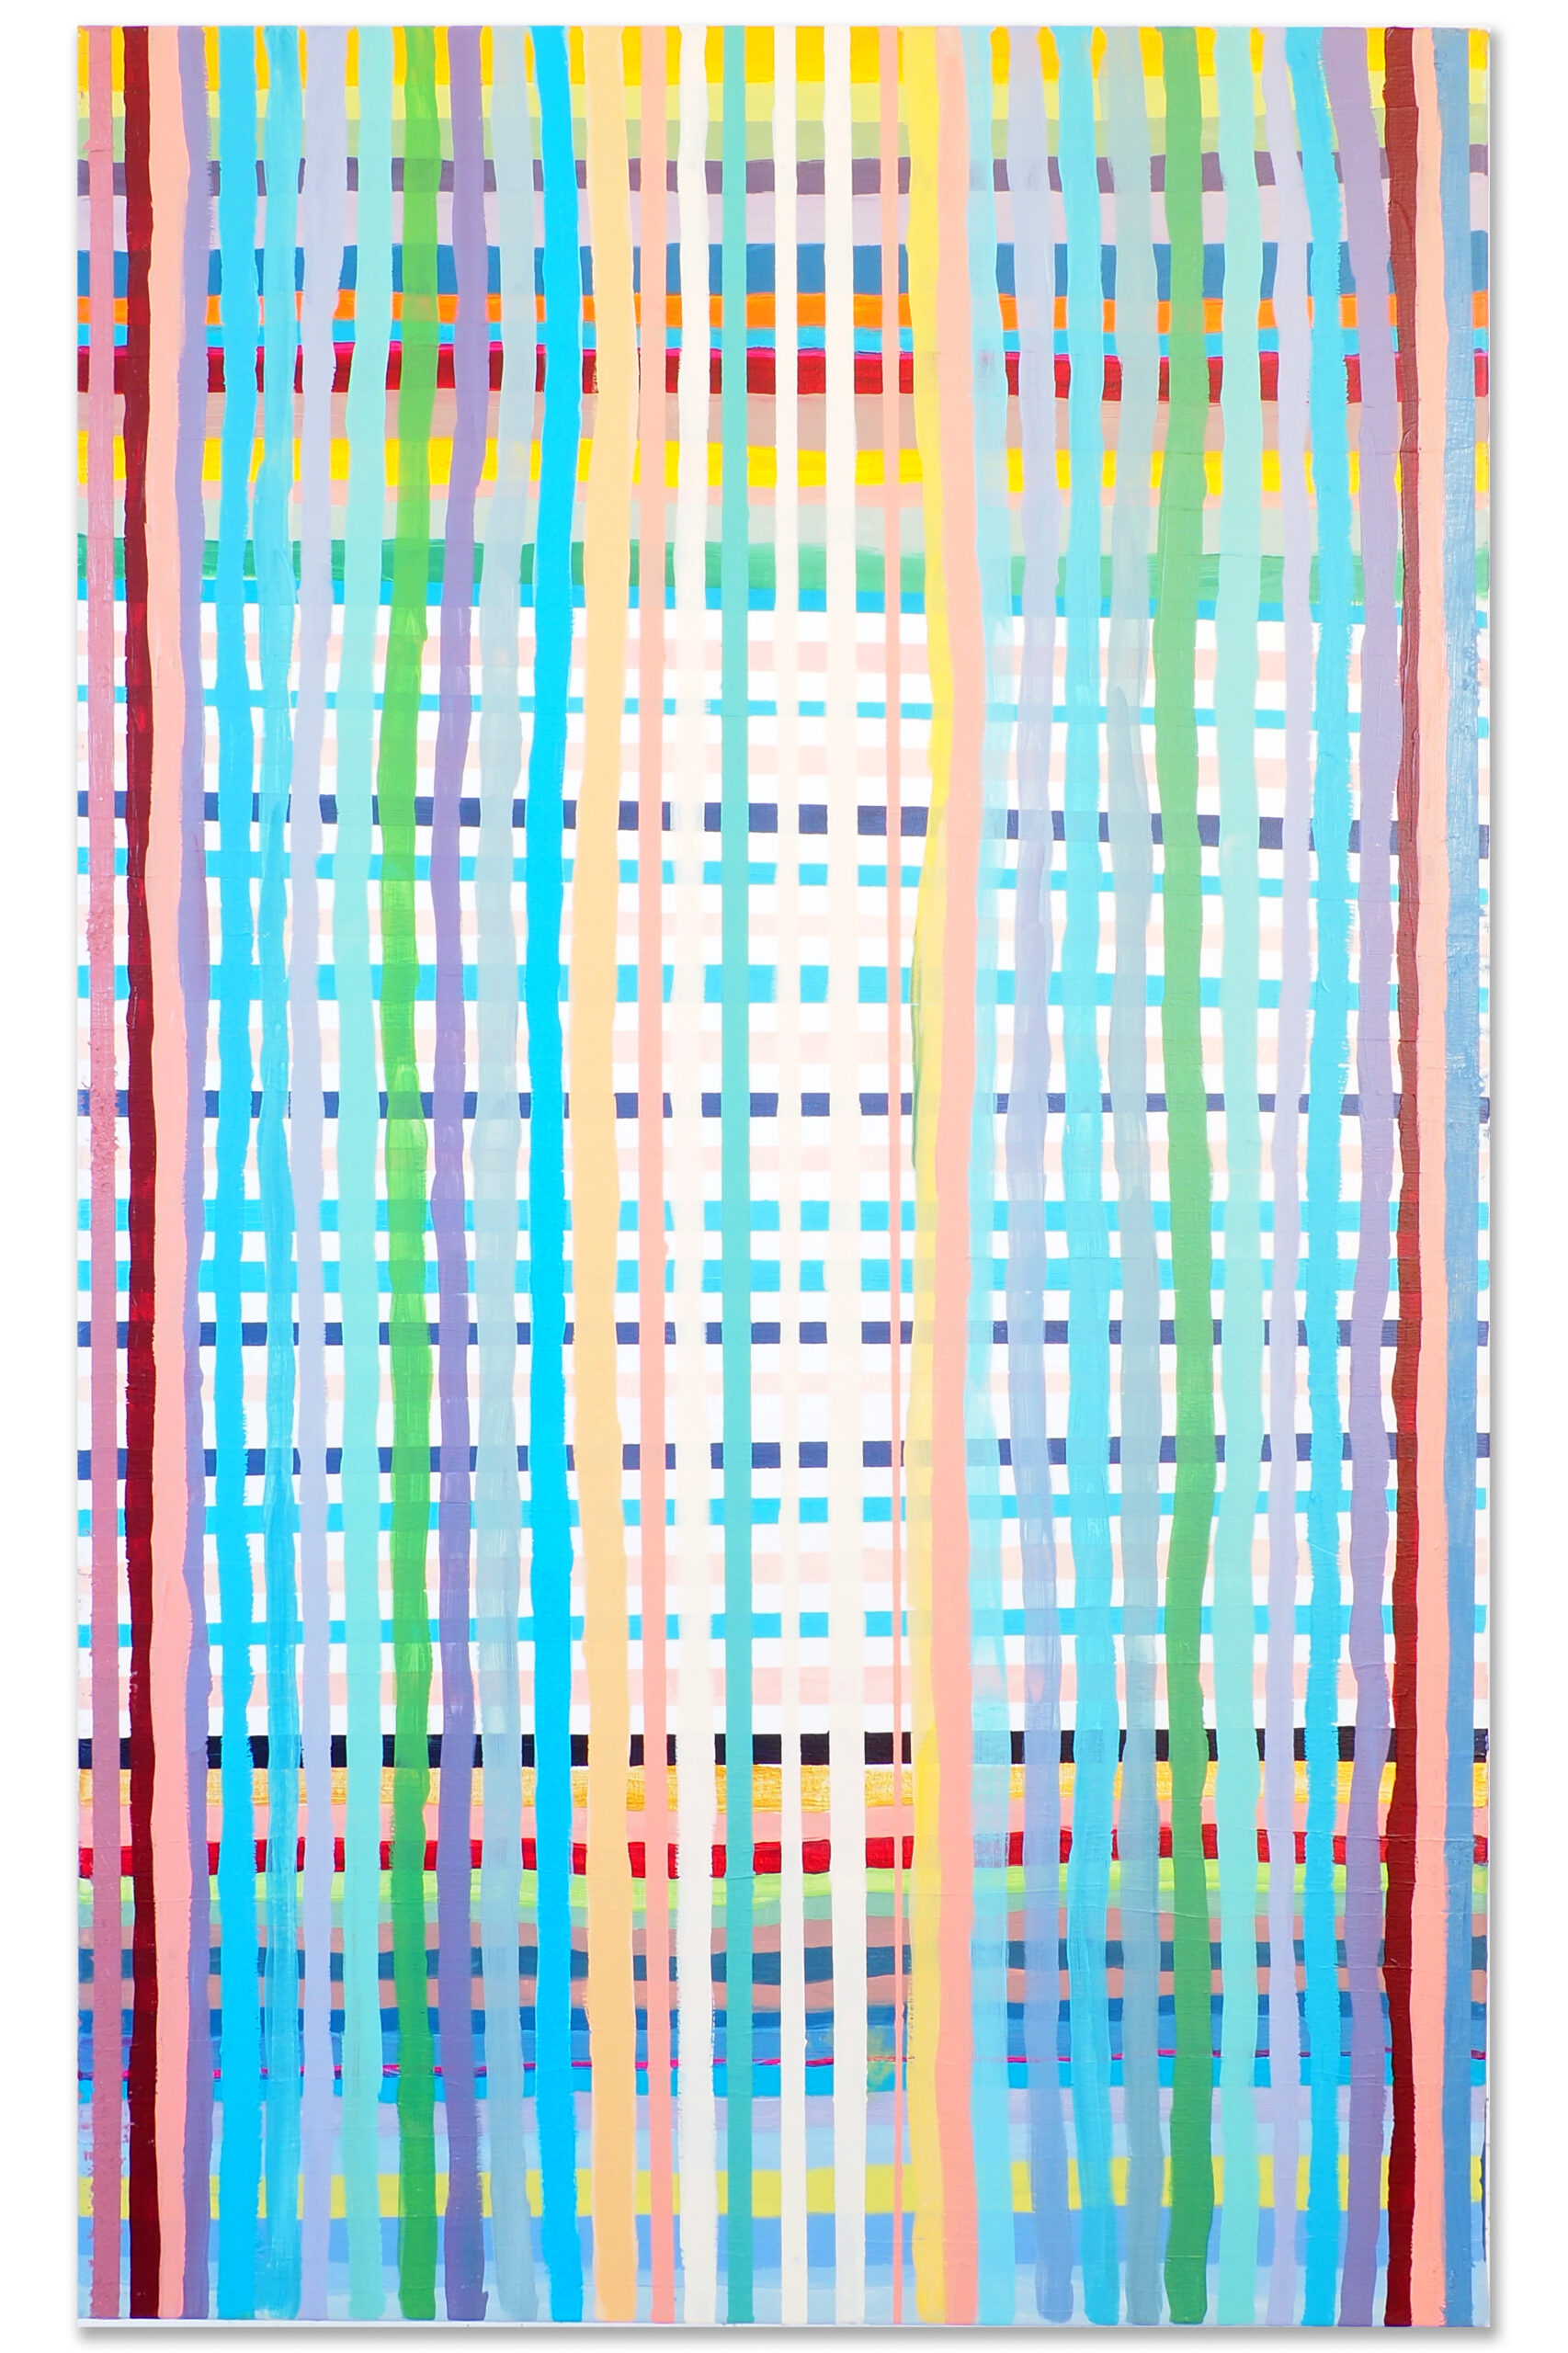 Grid nr. 004 Size 120 x80 cm Material acrylic and oil on canvas. Year 2017